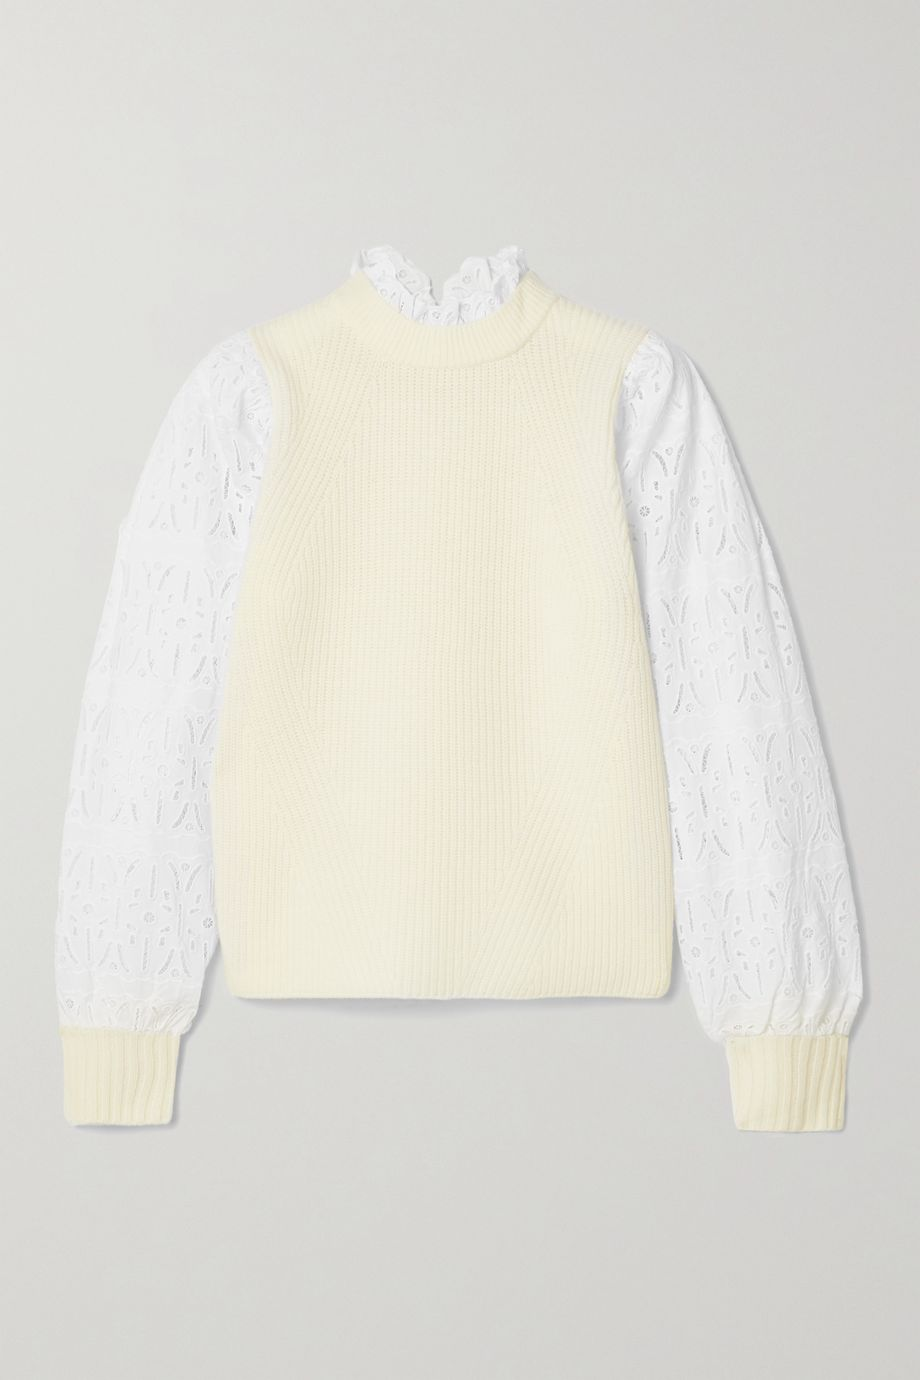 Sea Ribbed wool and broderie anglaise cotton sweater